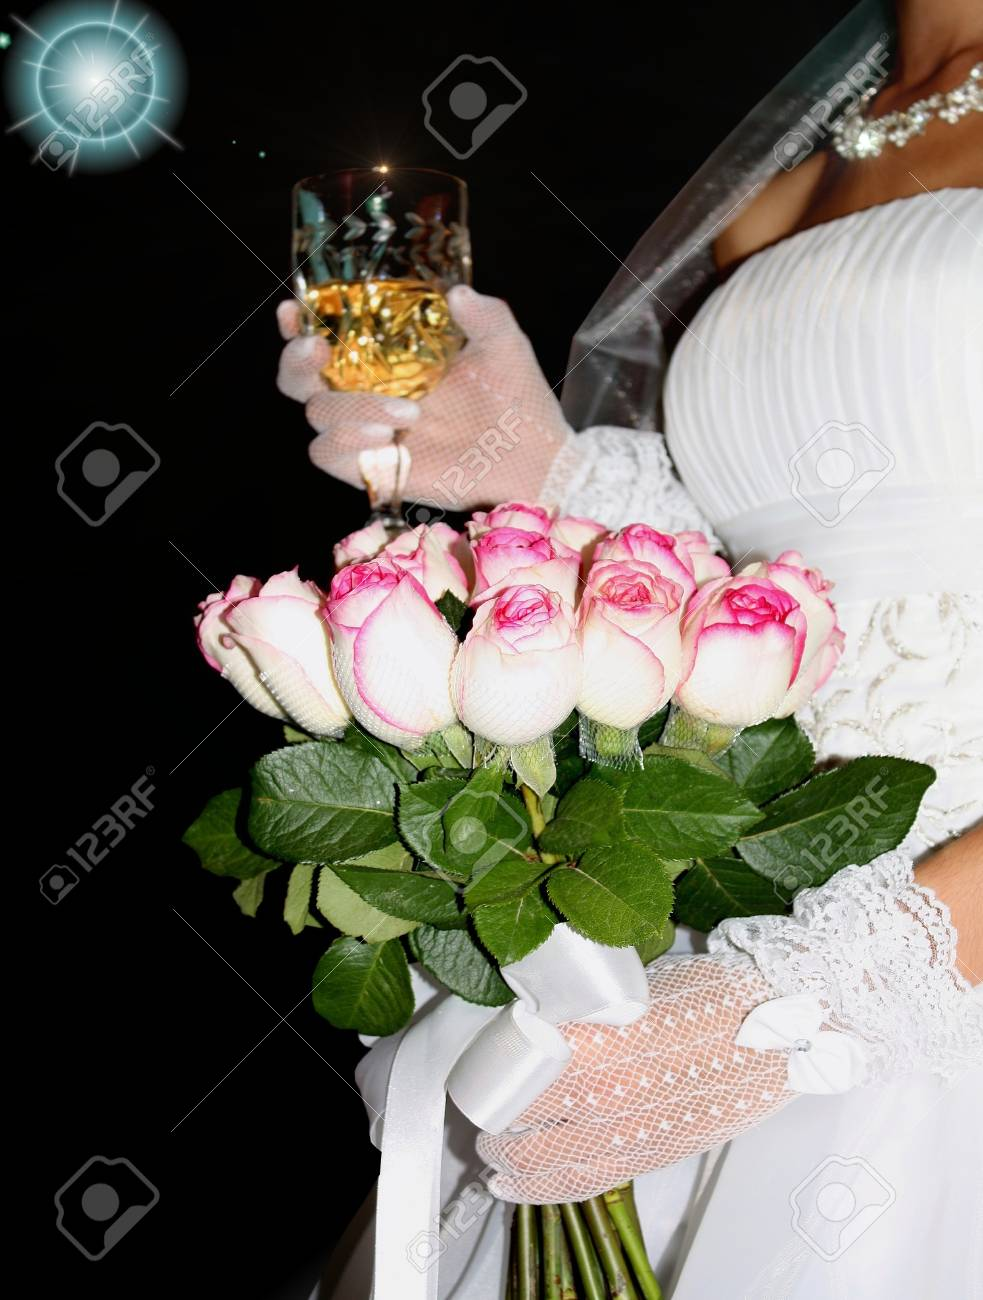 champaign and roses of the bride Stock Photo - 11740769